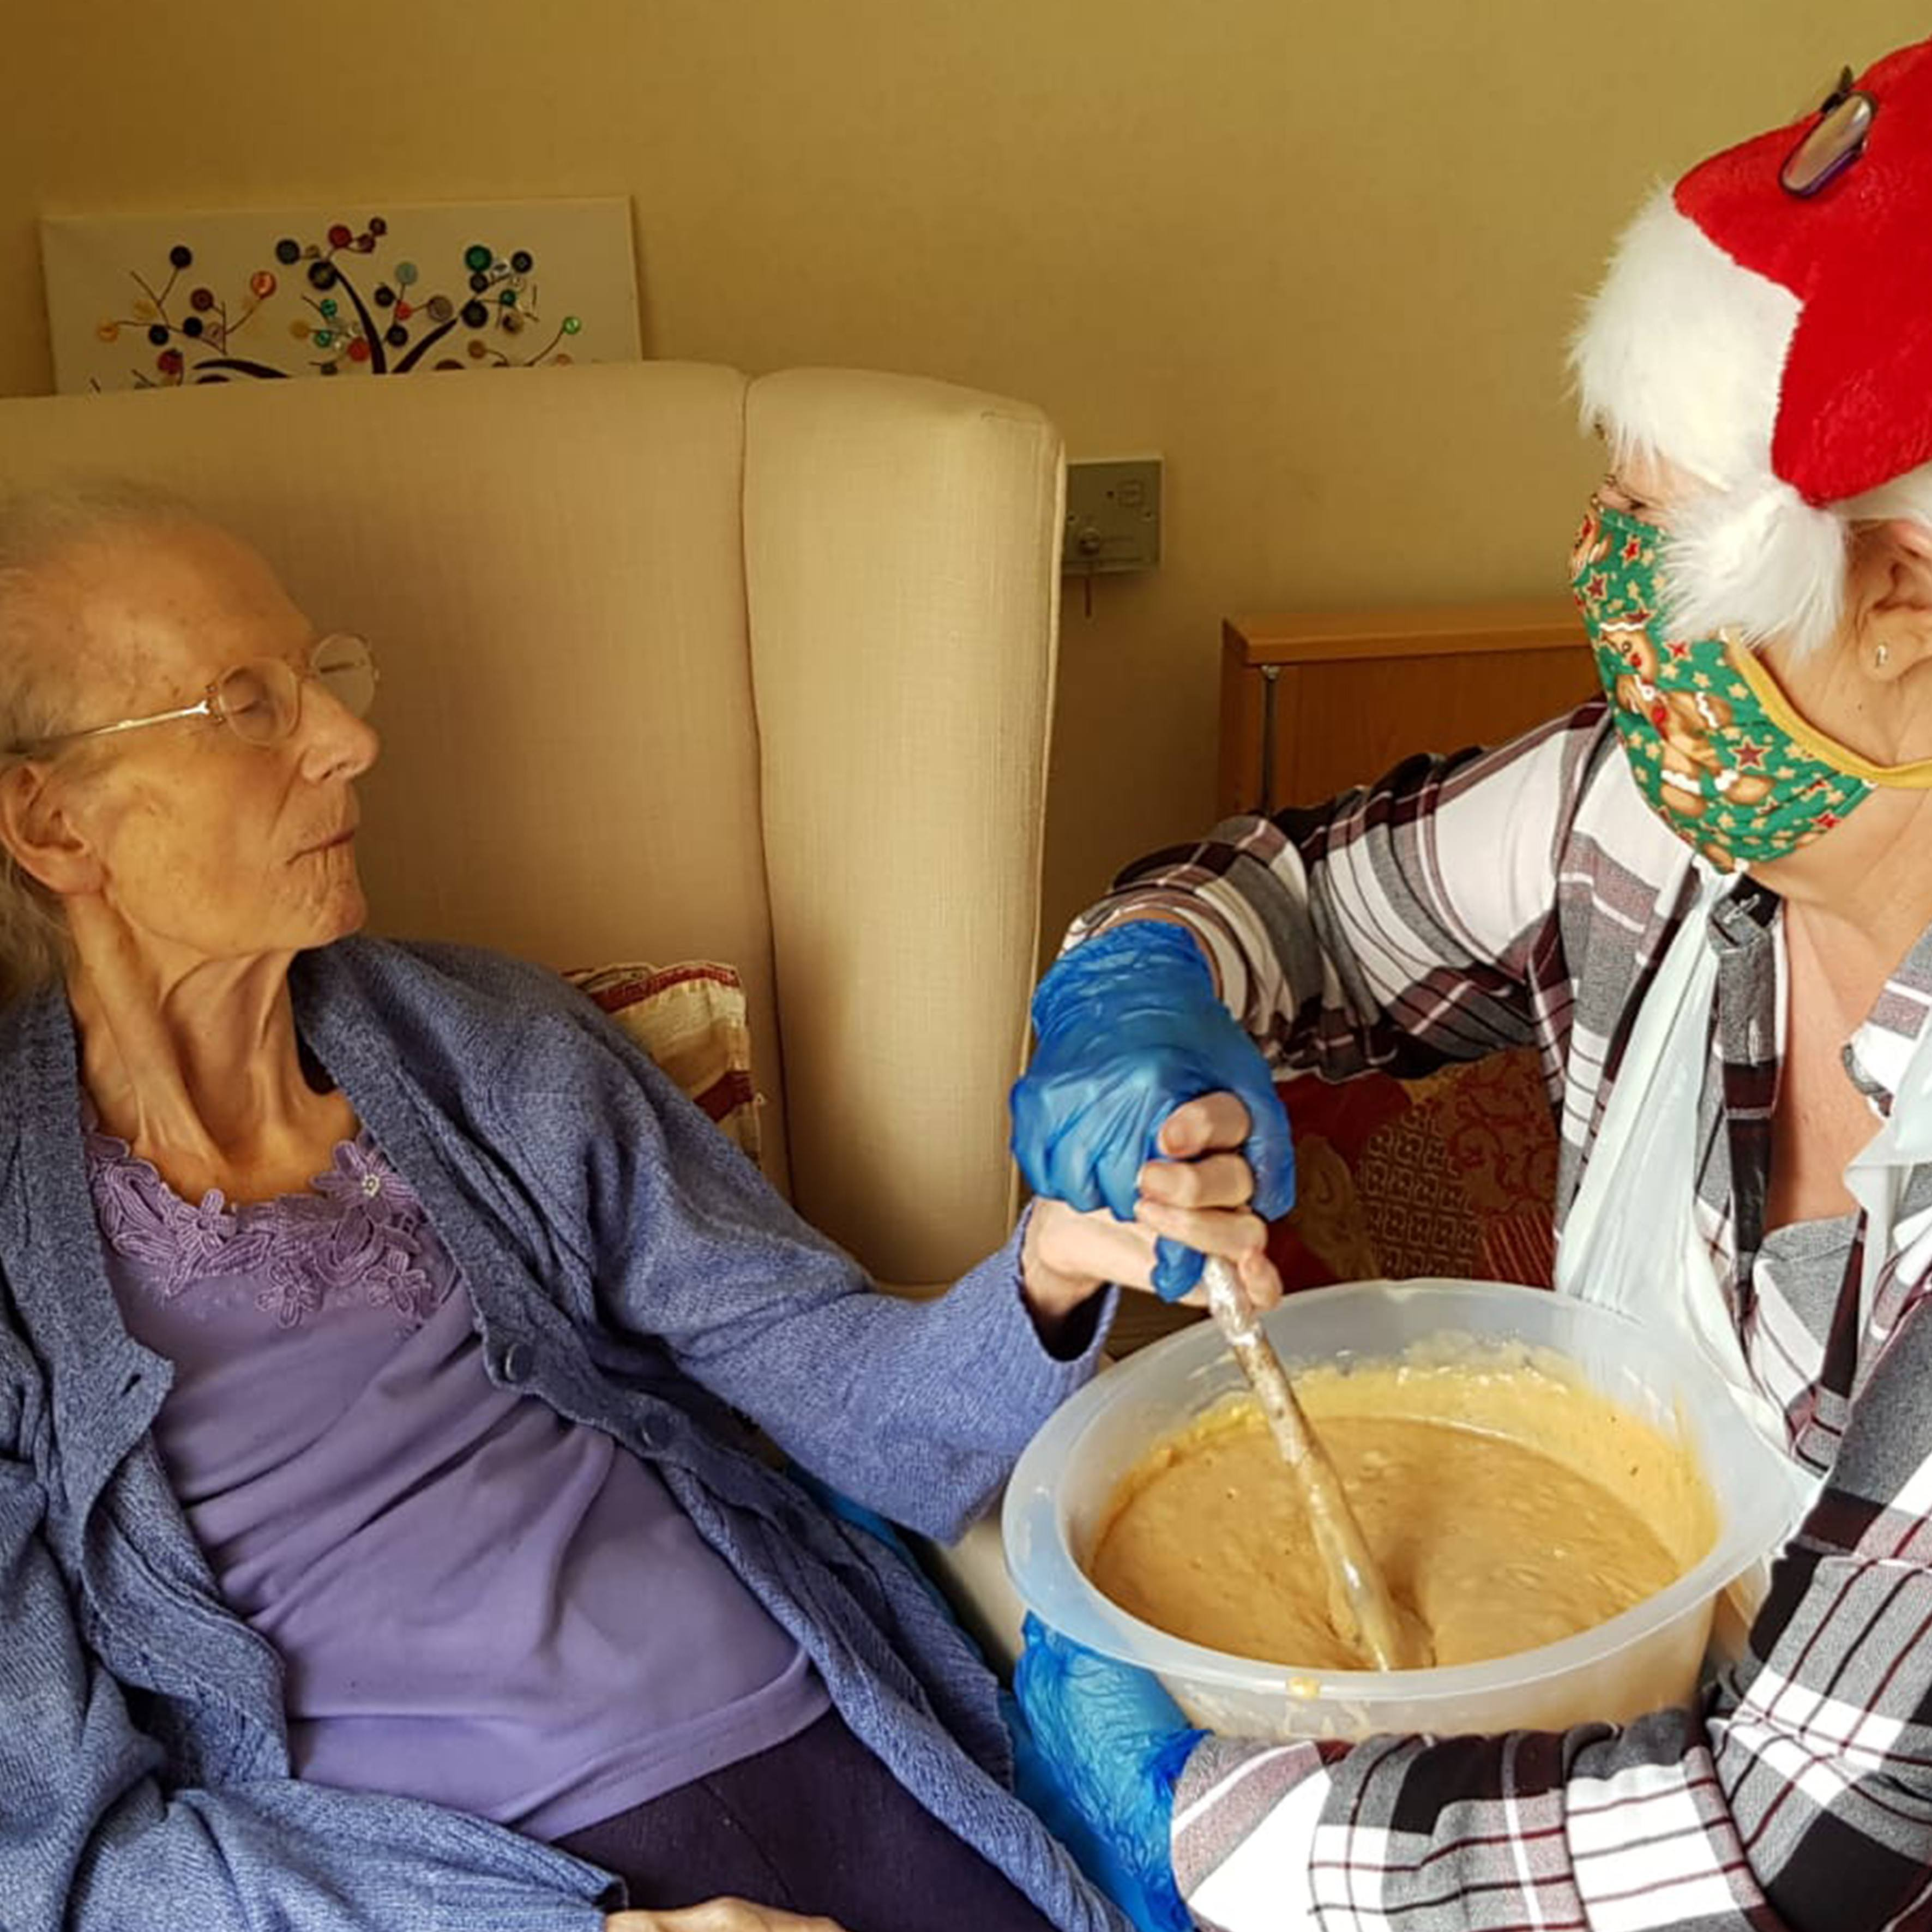 A helping hand with the cake mix